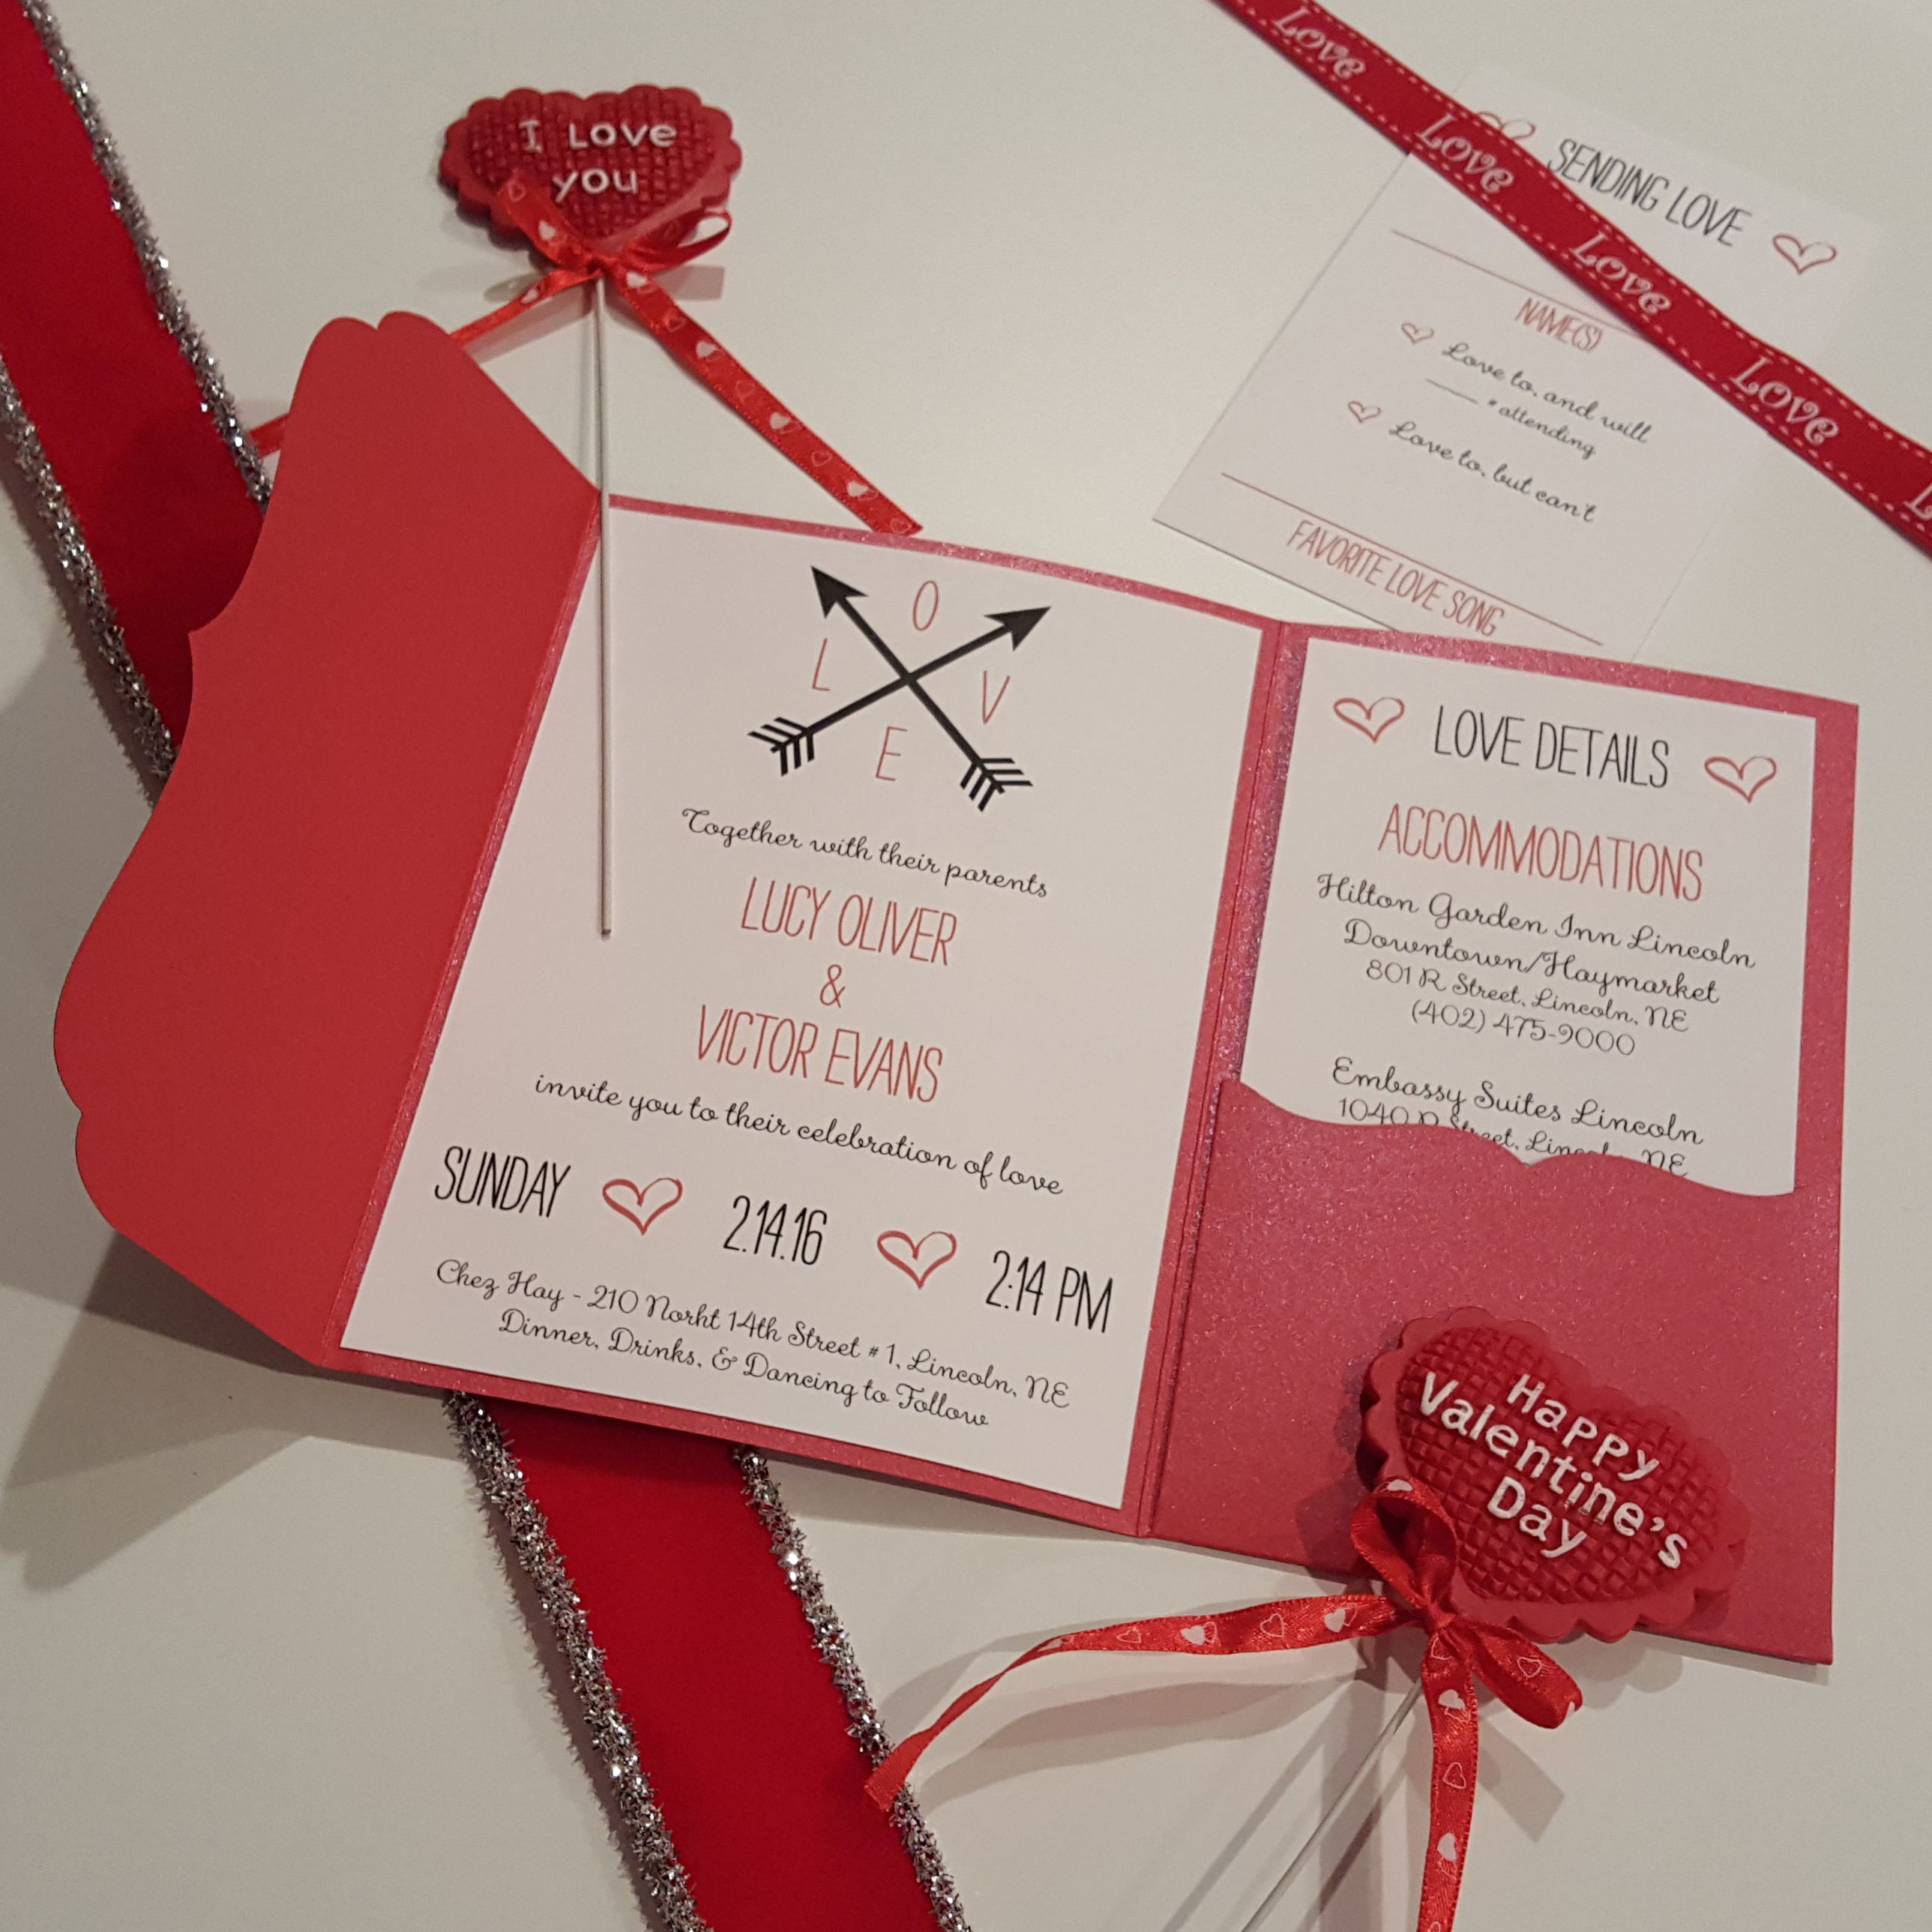 Ornate red pocket for this beautiful LOVE themed wedding invitation ...